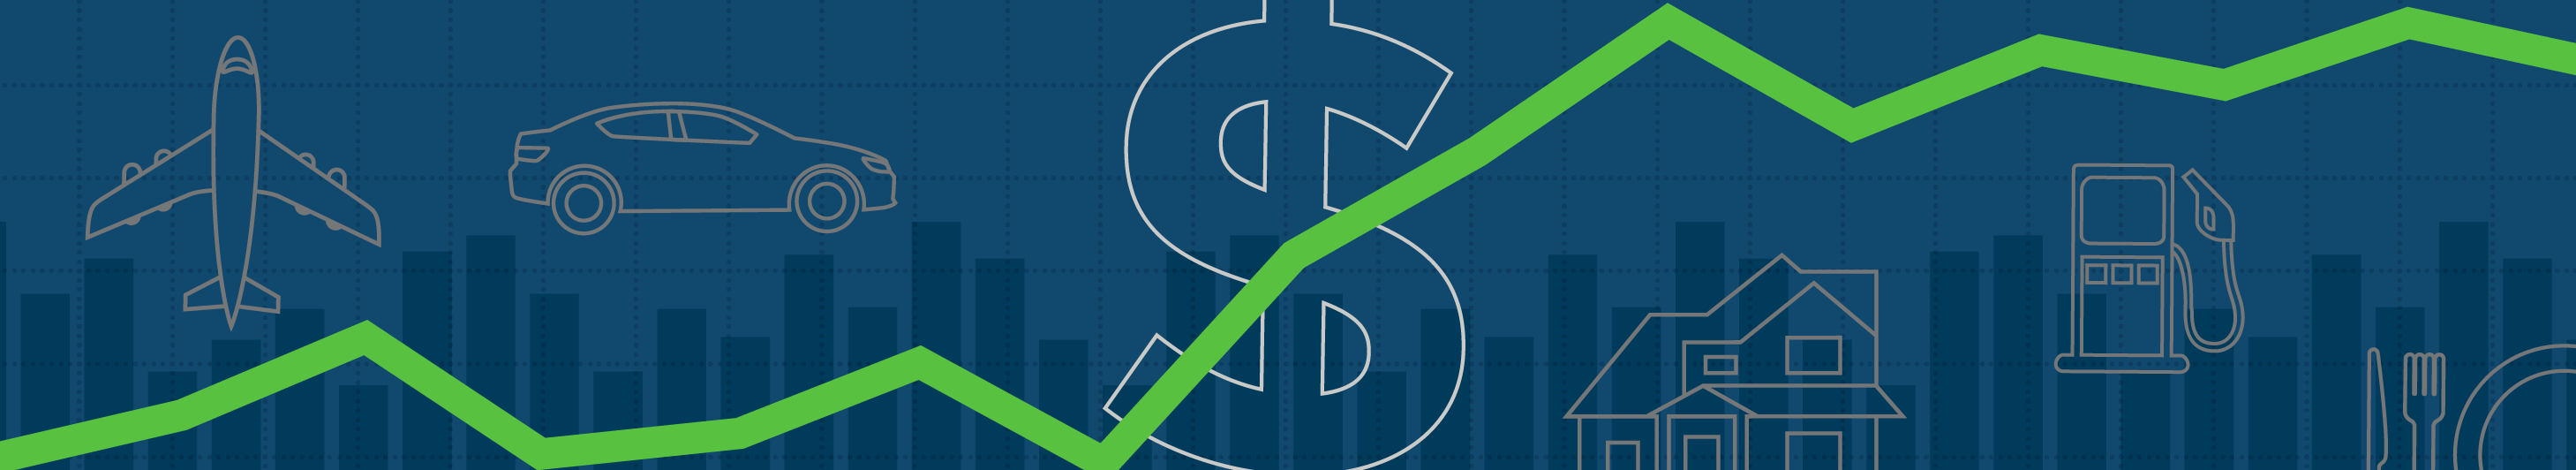 illustration of a green trend line on a dark blue background with a bar chart and airplane, car, dollar sign, house, and gas pump icons